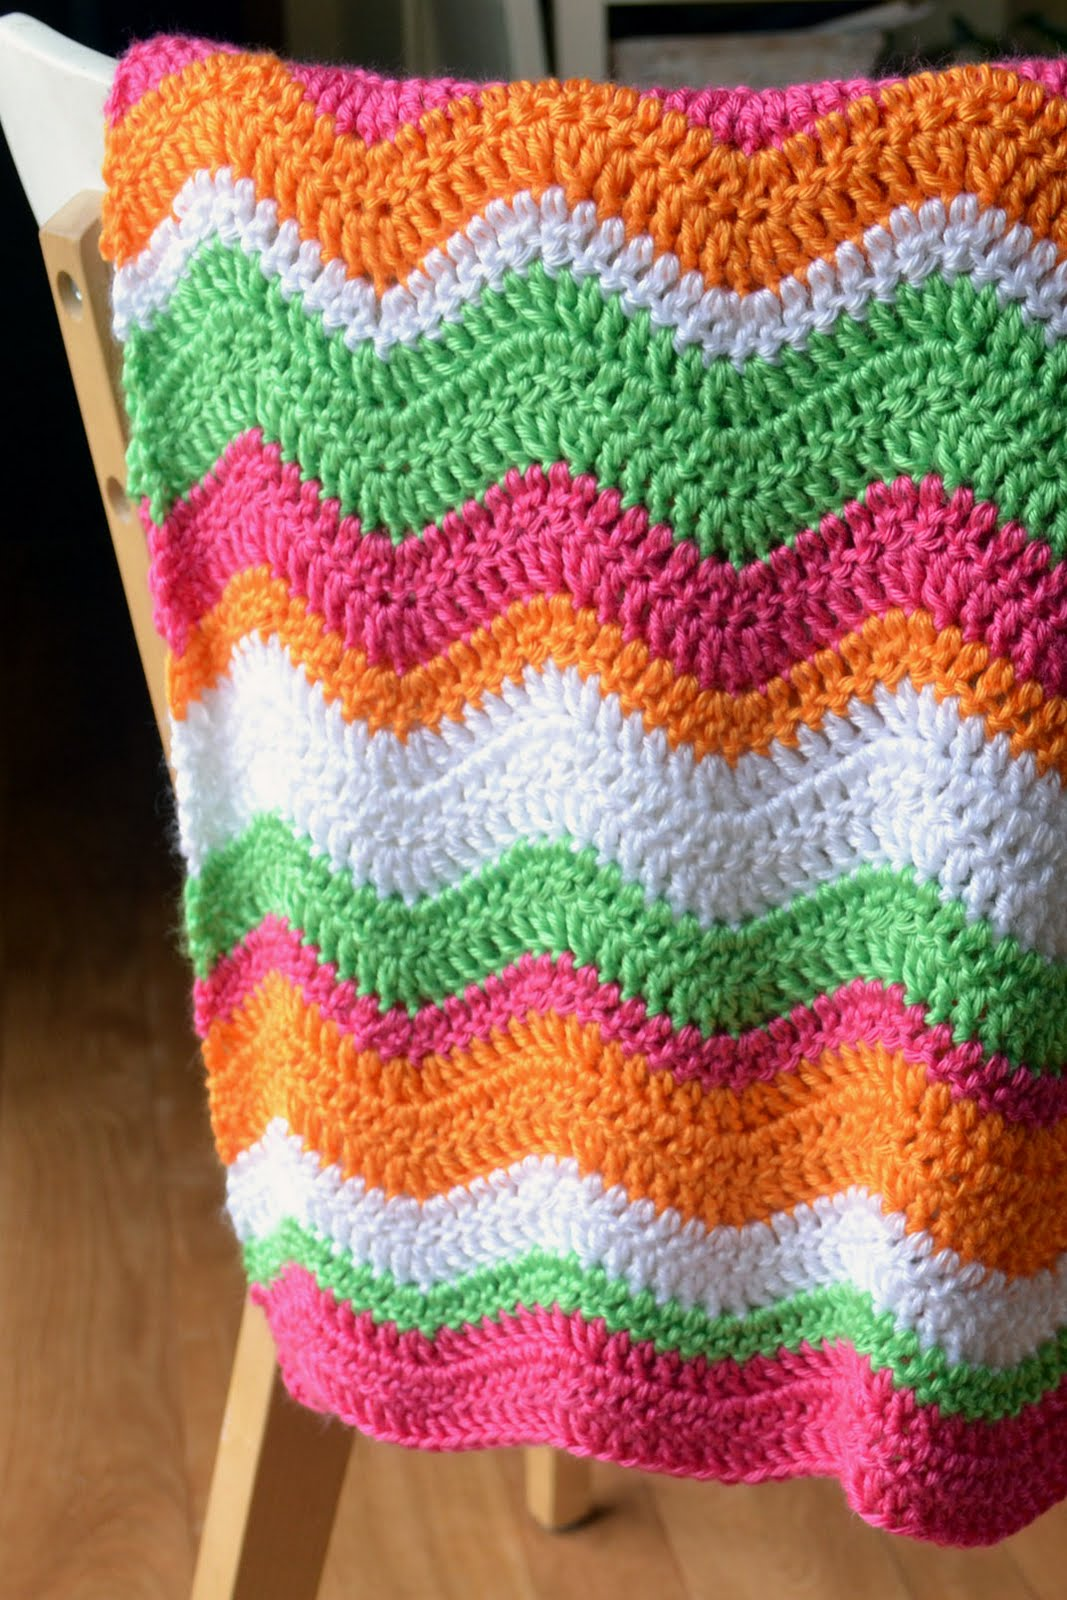 Crochet Ripple Afghan Pattern Instructions : Crochet in Color: Instructions for the Brite Baby Ripple